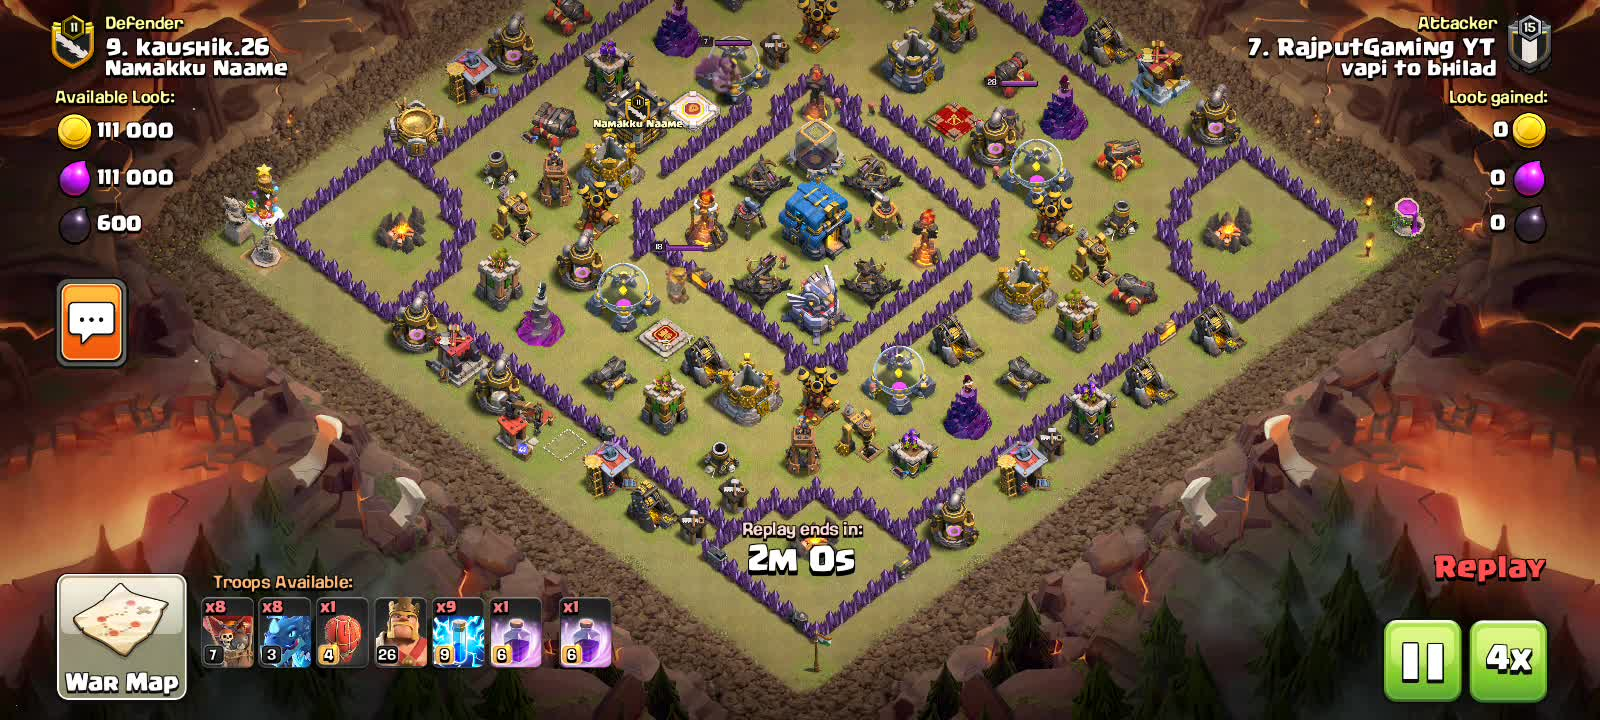 Hello friends how are you all hope all is well, Free fire Challenge For War Attck  Vabi to bhaild vs Namakku Naame  Guild Leval 15 vs 11 My Choice 9 Number  Kaushik Vs Rajputgaming YT I will atcck kaushik Win 3 Star Live Watch Clash of clans War Challenge Enjoy The game  If you playing clash of clan watching full video you can understand So Guyas If you like my video plz share your Friend